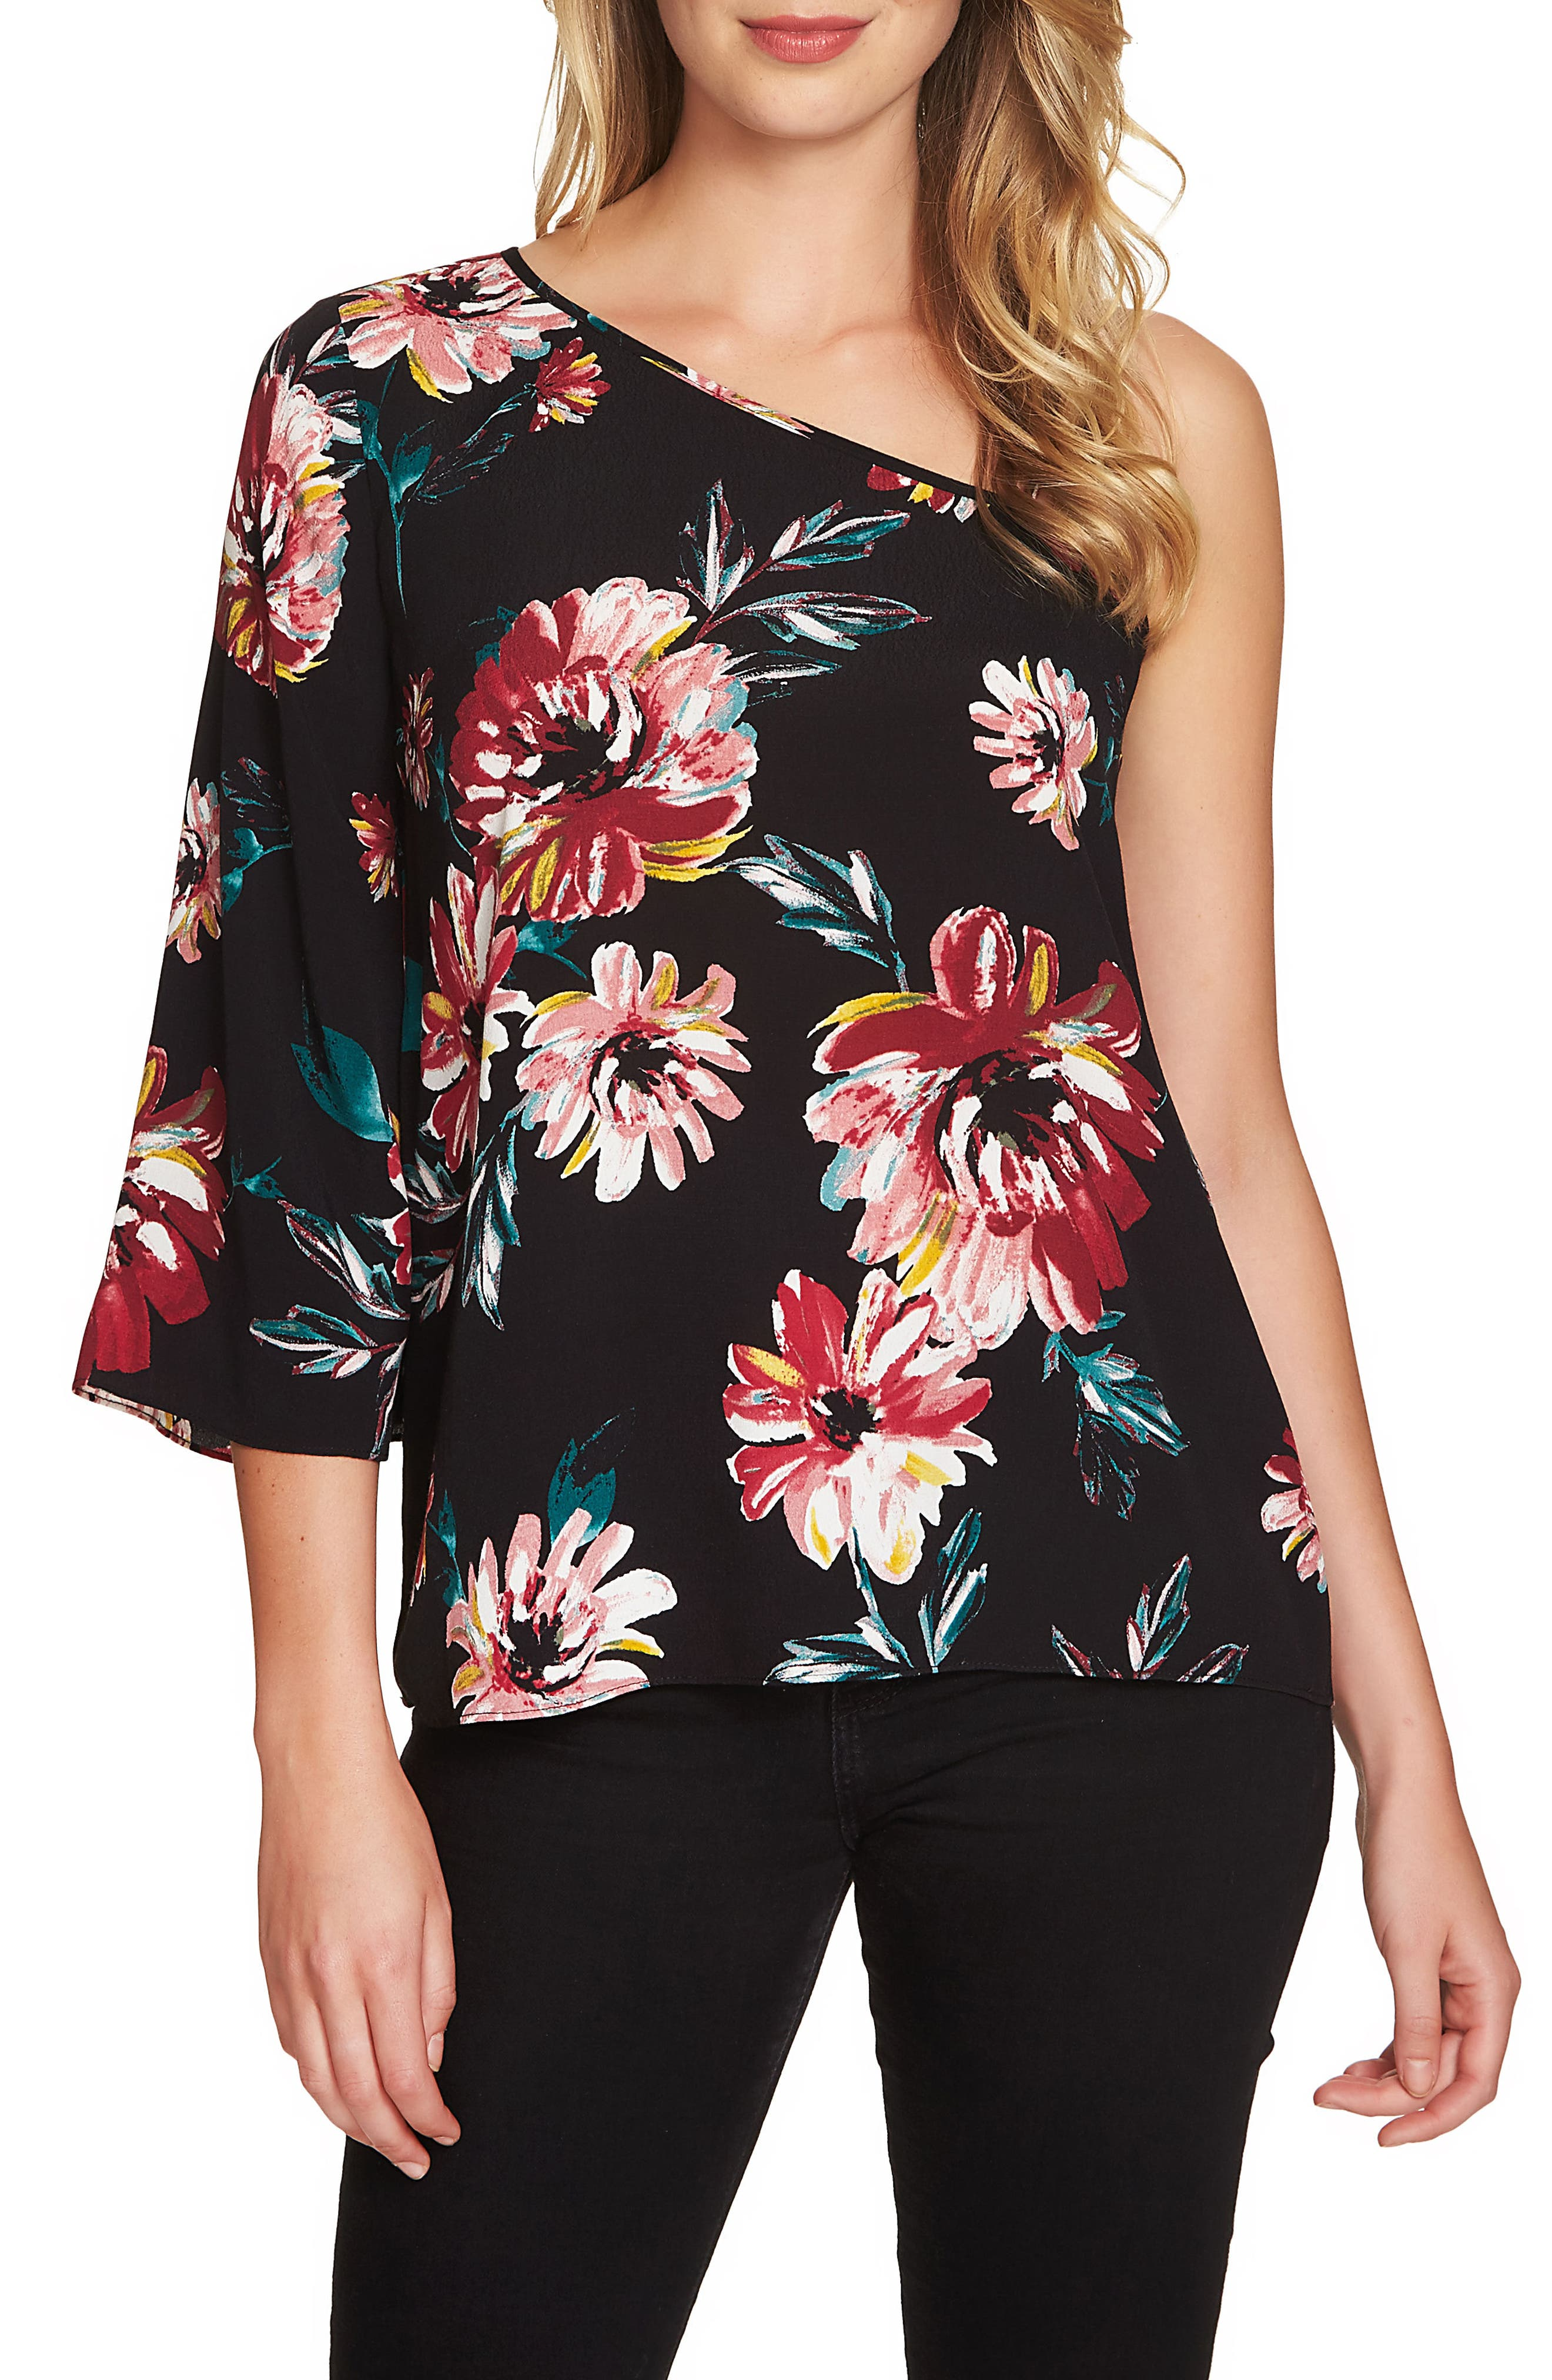 Main Image - 1.STATE Floral One-Shoulder Top